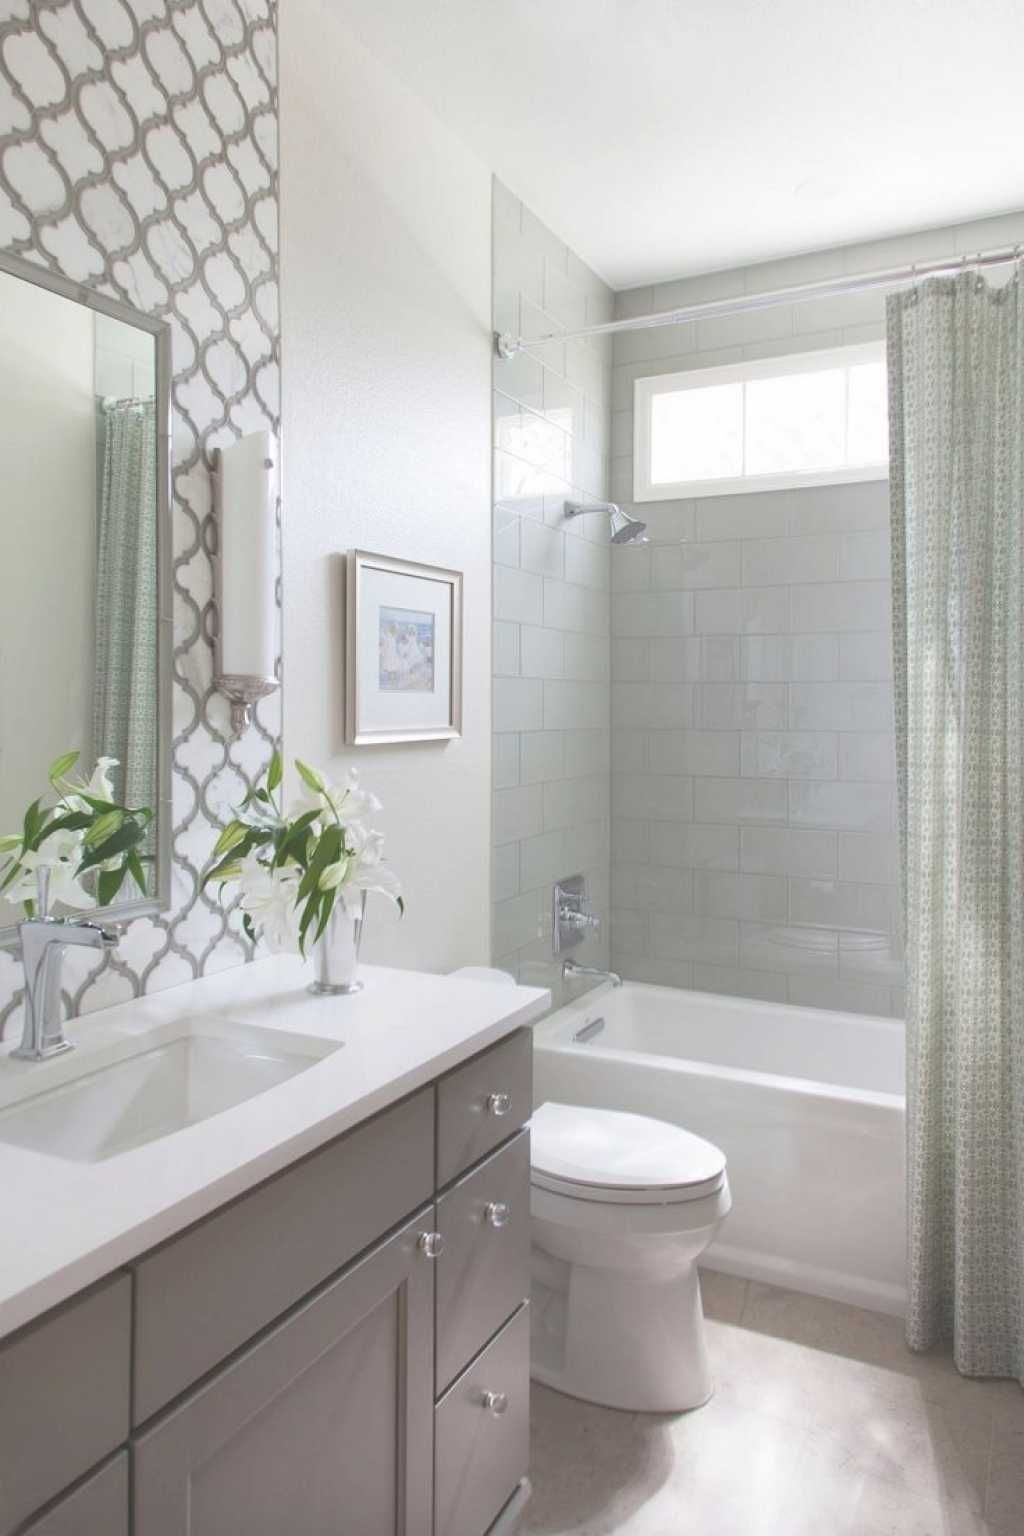 Remodel your small bathroom fast and inexpensively my - Soaking tubs for small bathrooms ...